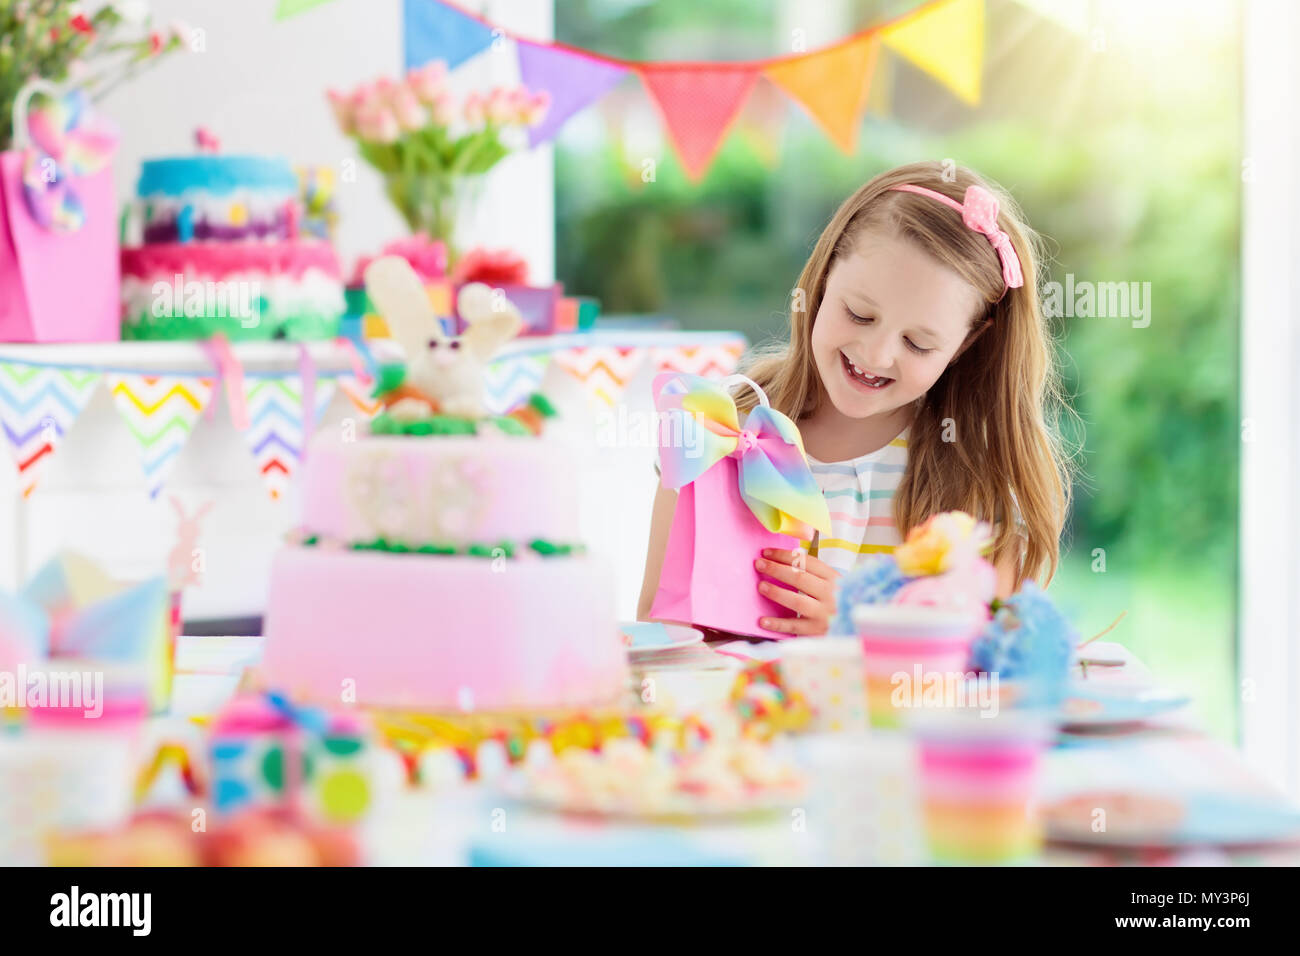 Kids Birthday Party With Colorful Rainbow Pastel Decoration And Bunny Layer Cake Little Girl Sweets Candy Fruit Balloons Banner At Fes